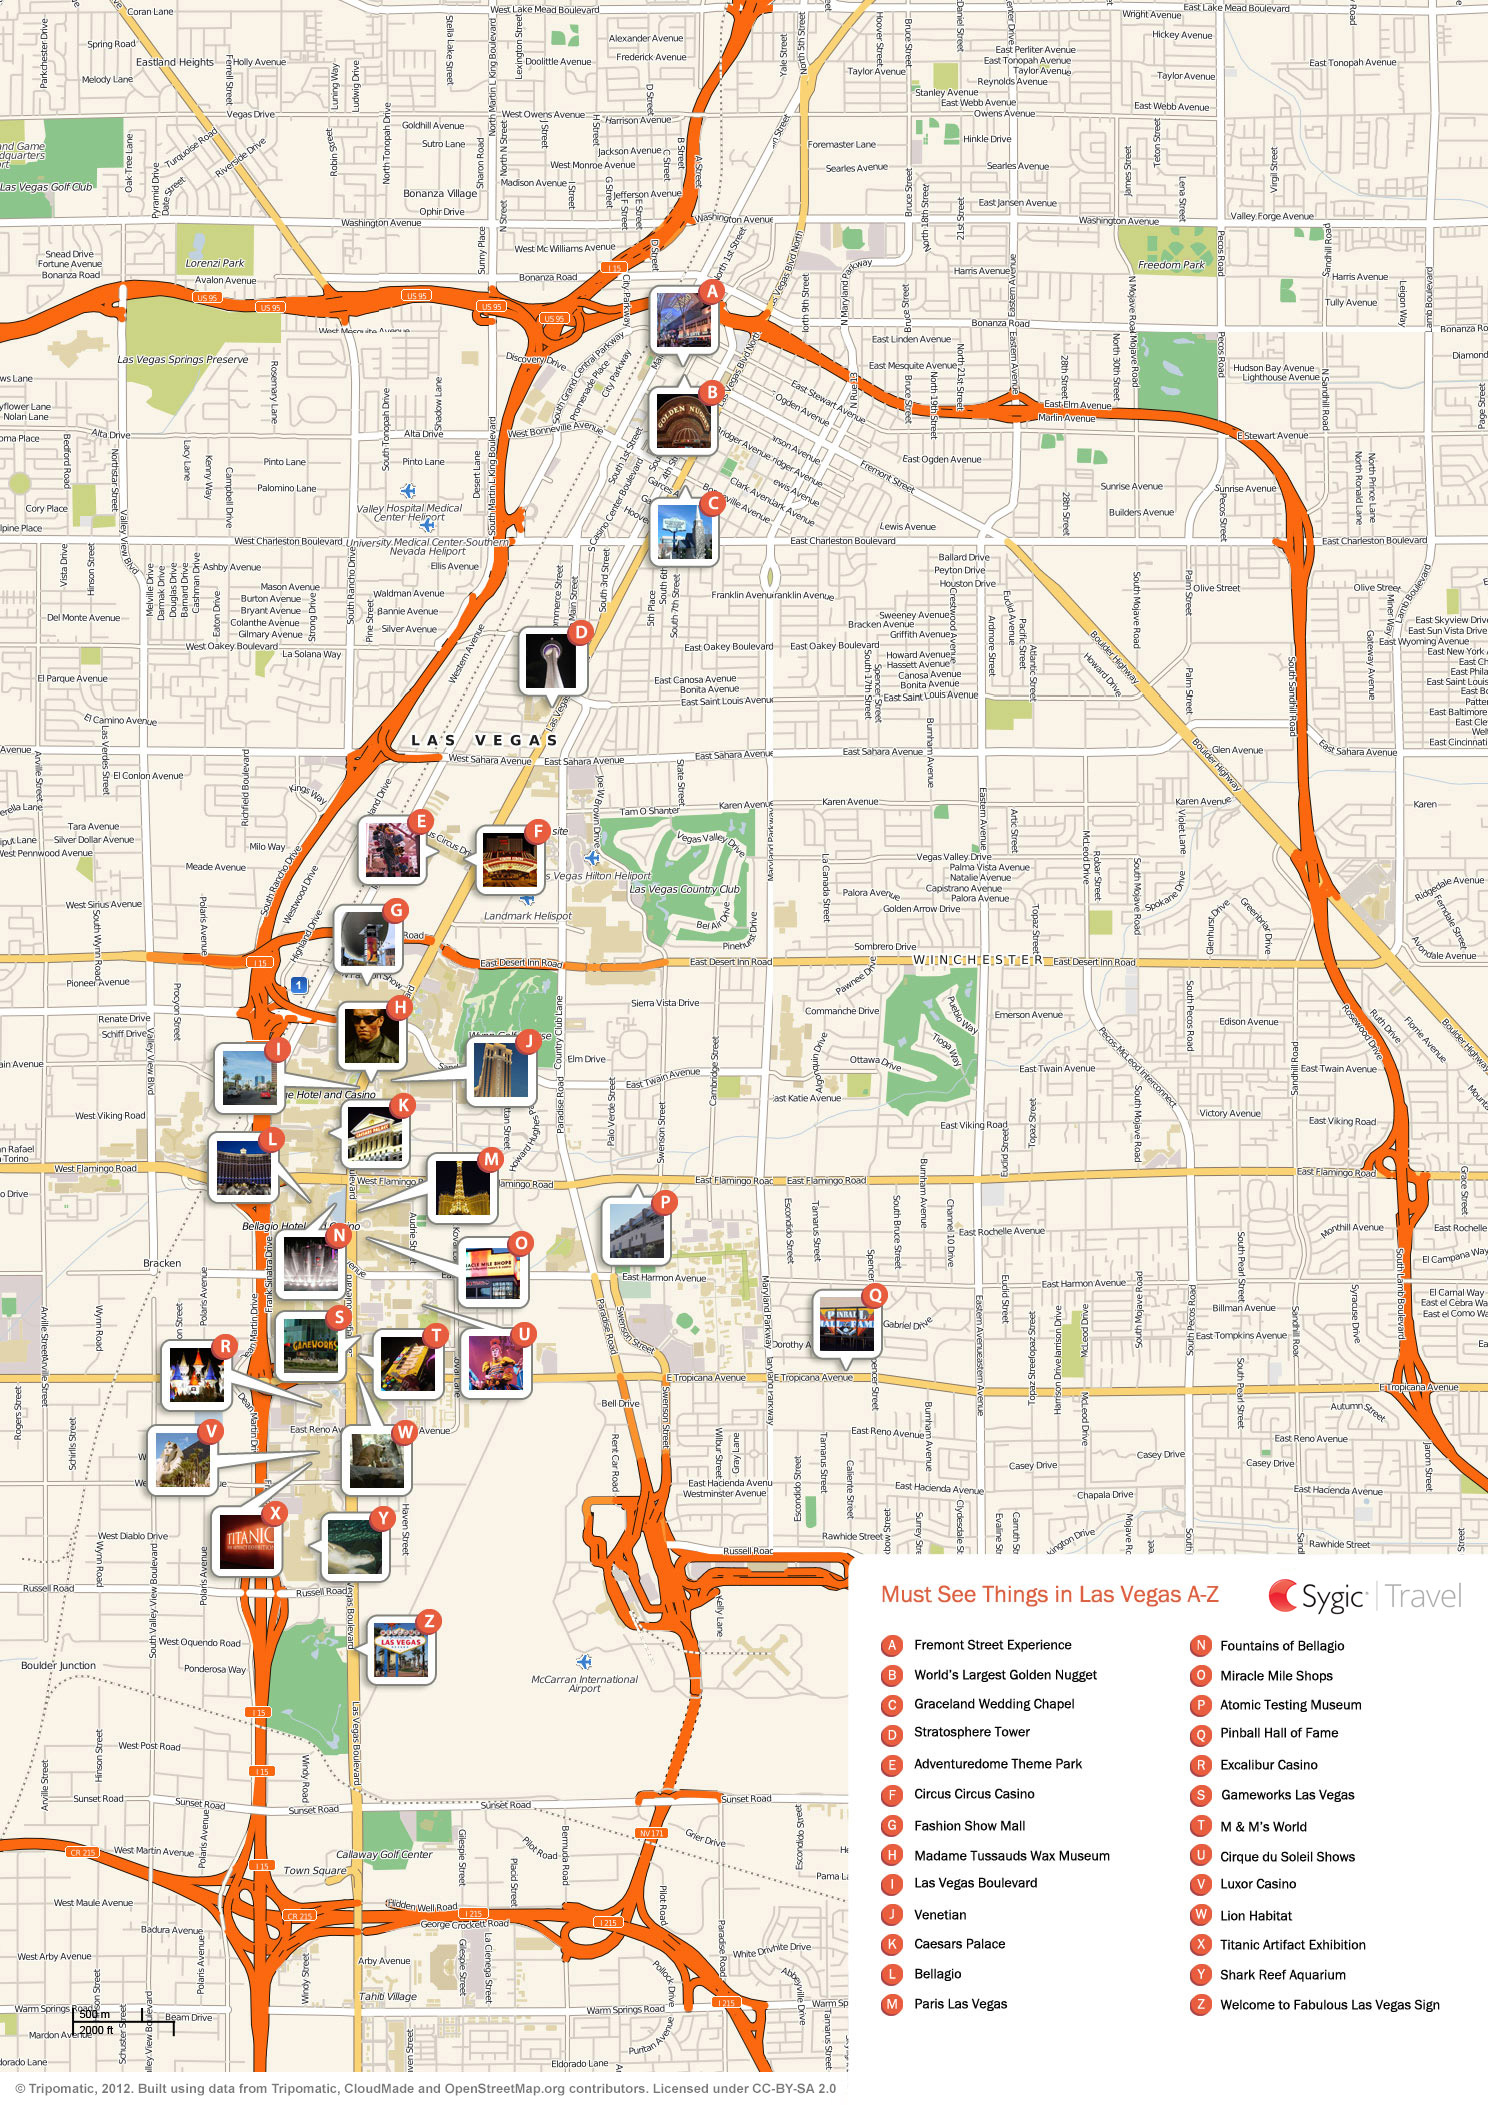 Las Vegas Printable Tourist Map – Nevada Tourist Attractions Map